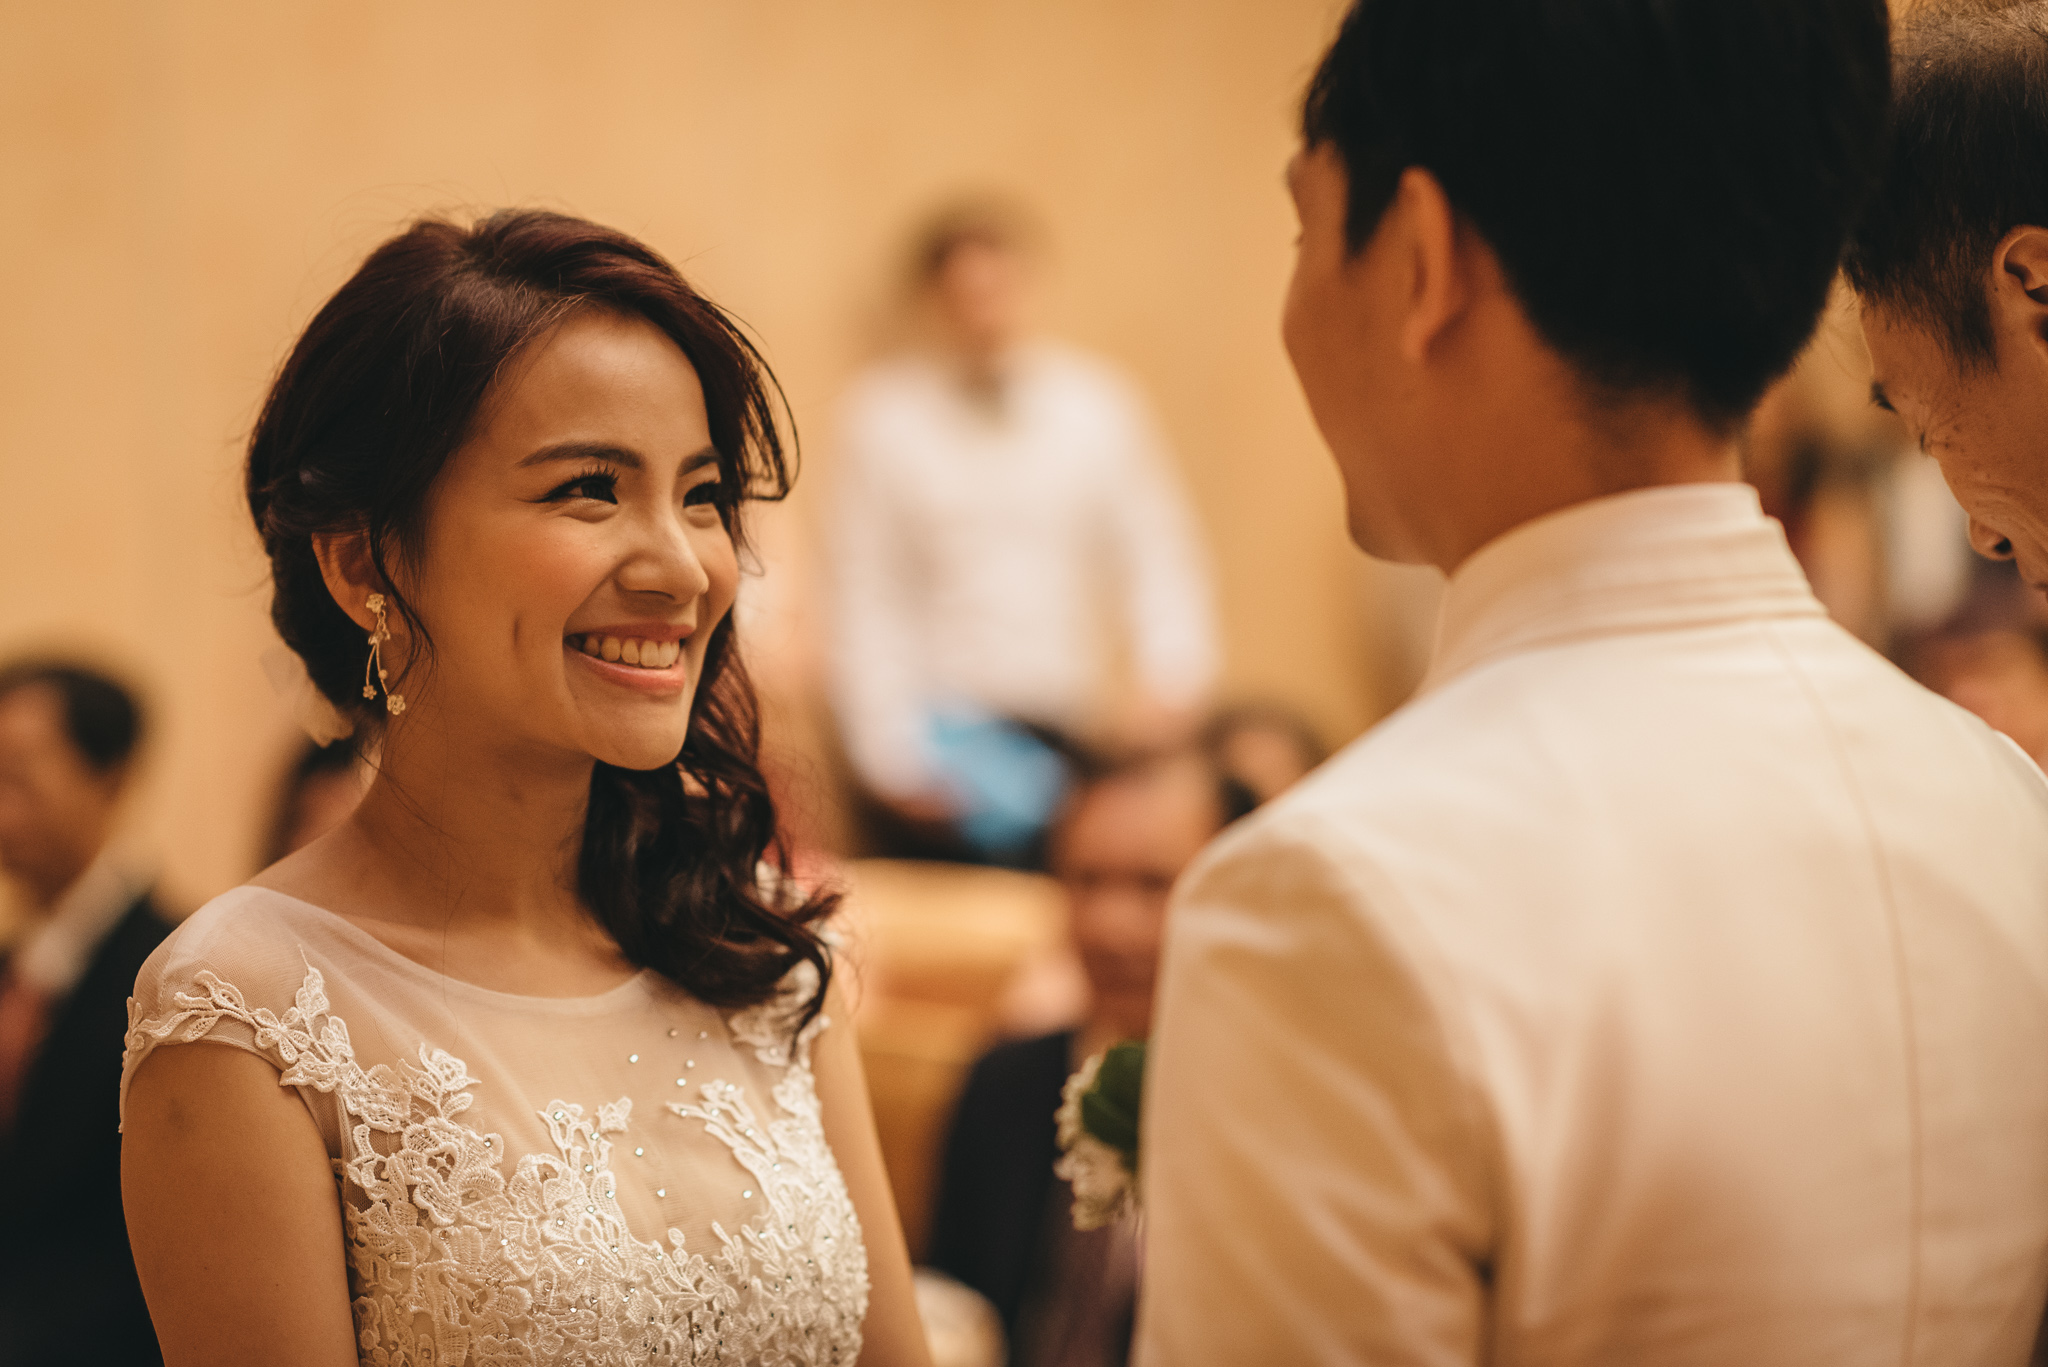 Fiona & Terence Wedding Day Highlights (resized for sharing) - 177.jpg